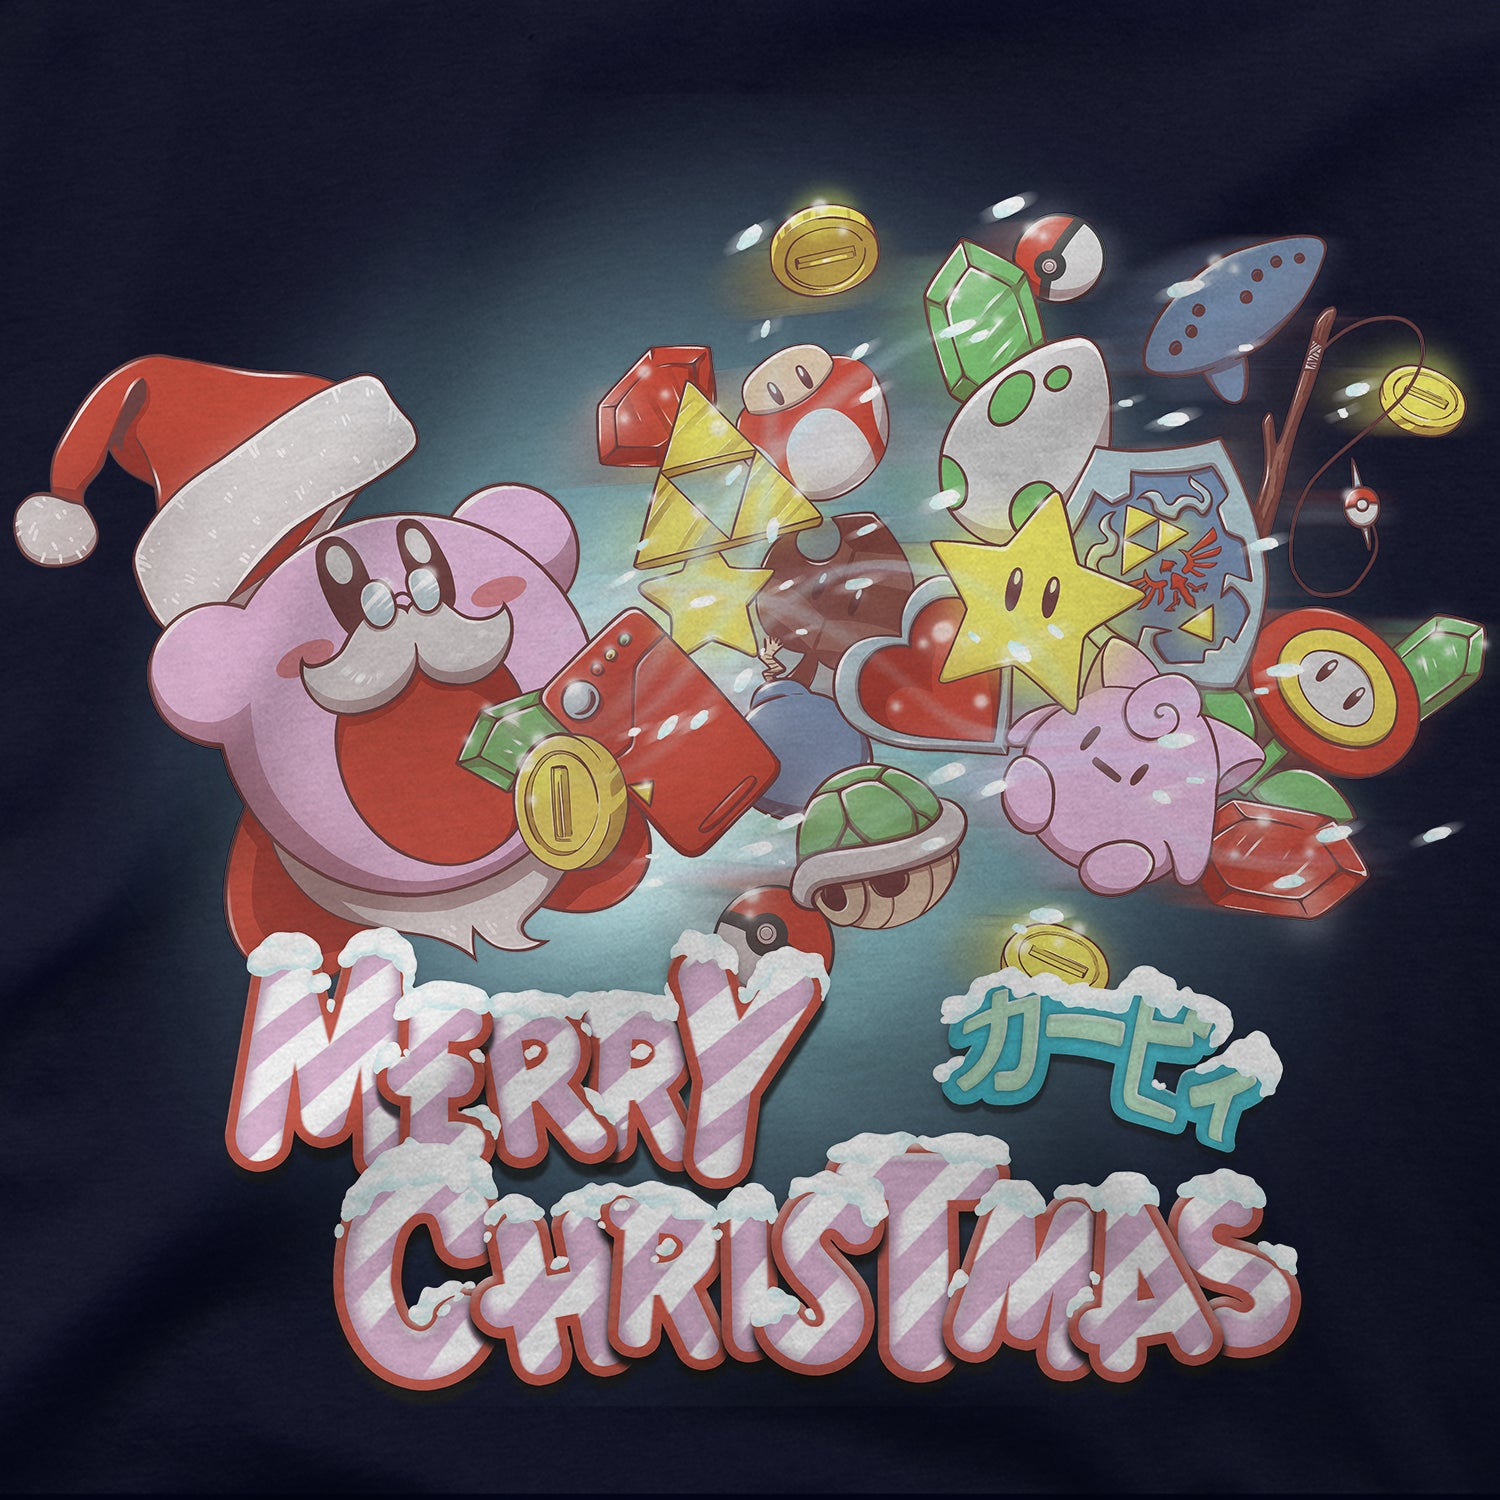 Merry Christmas Kirby